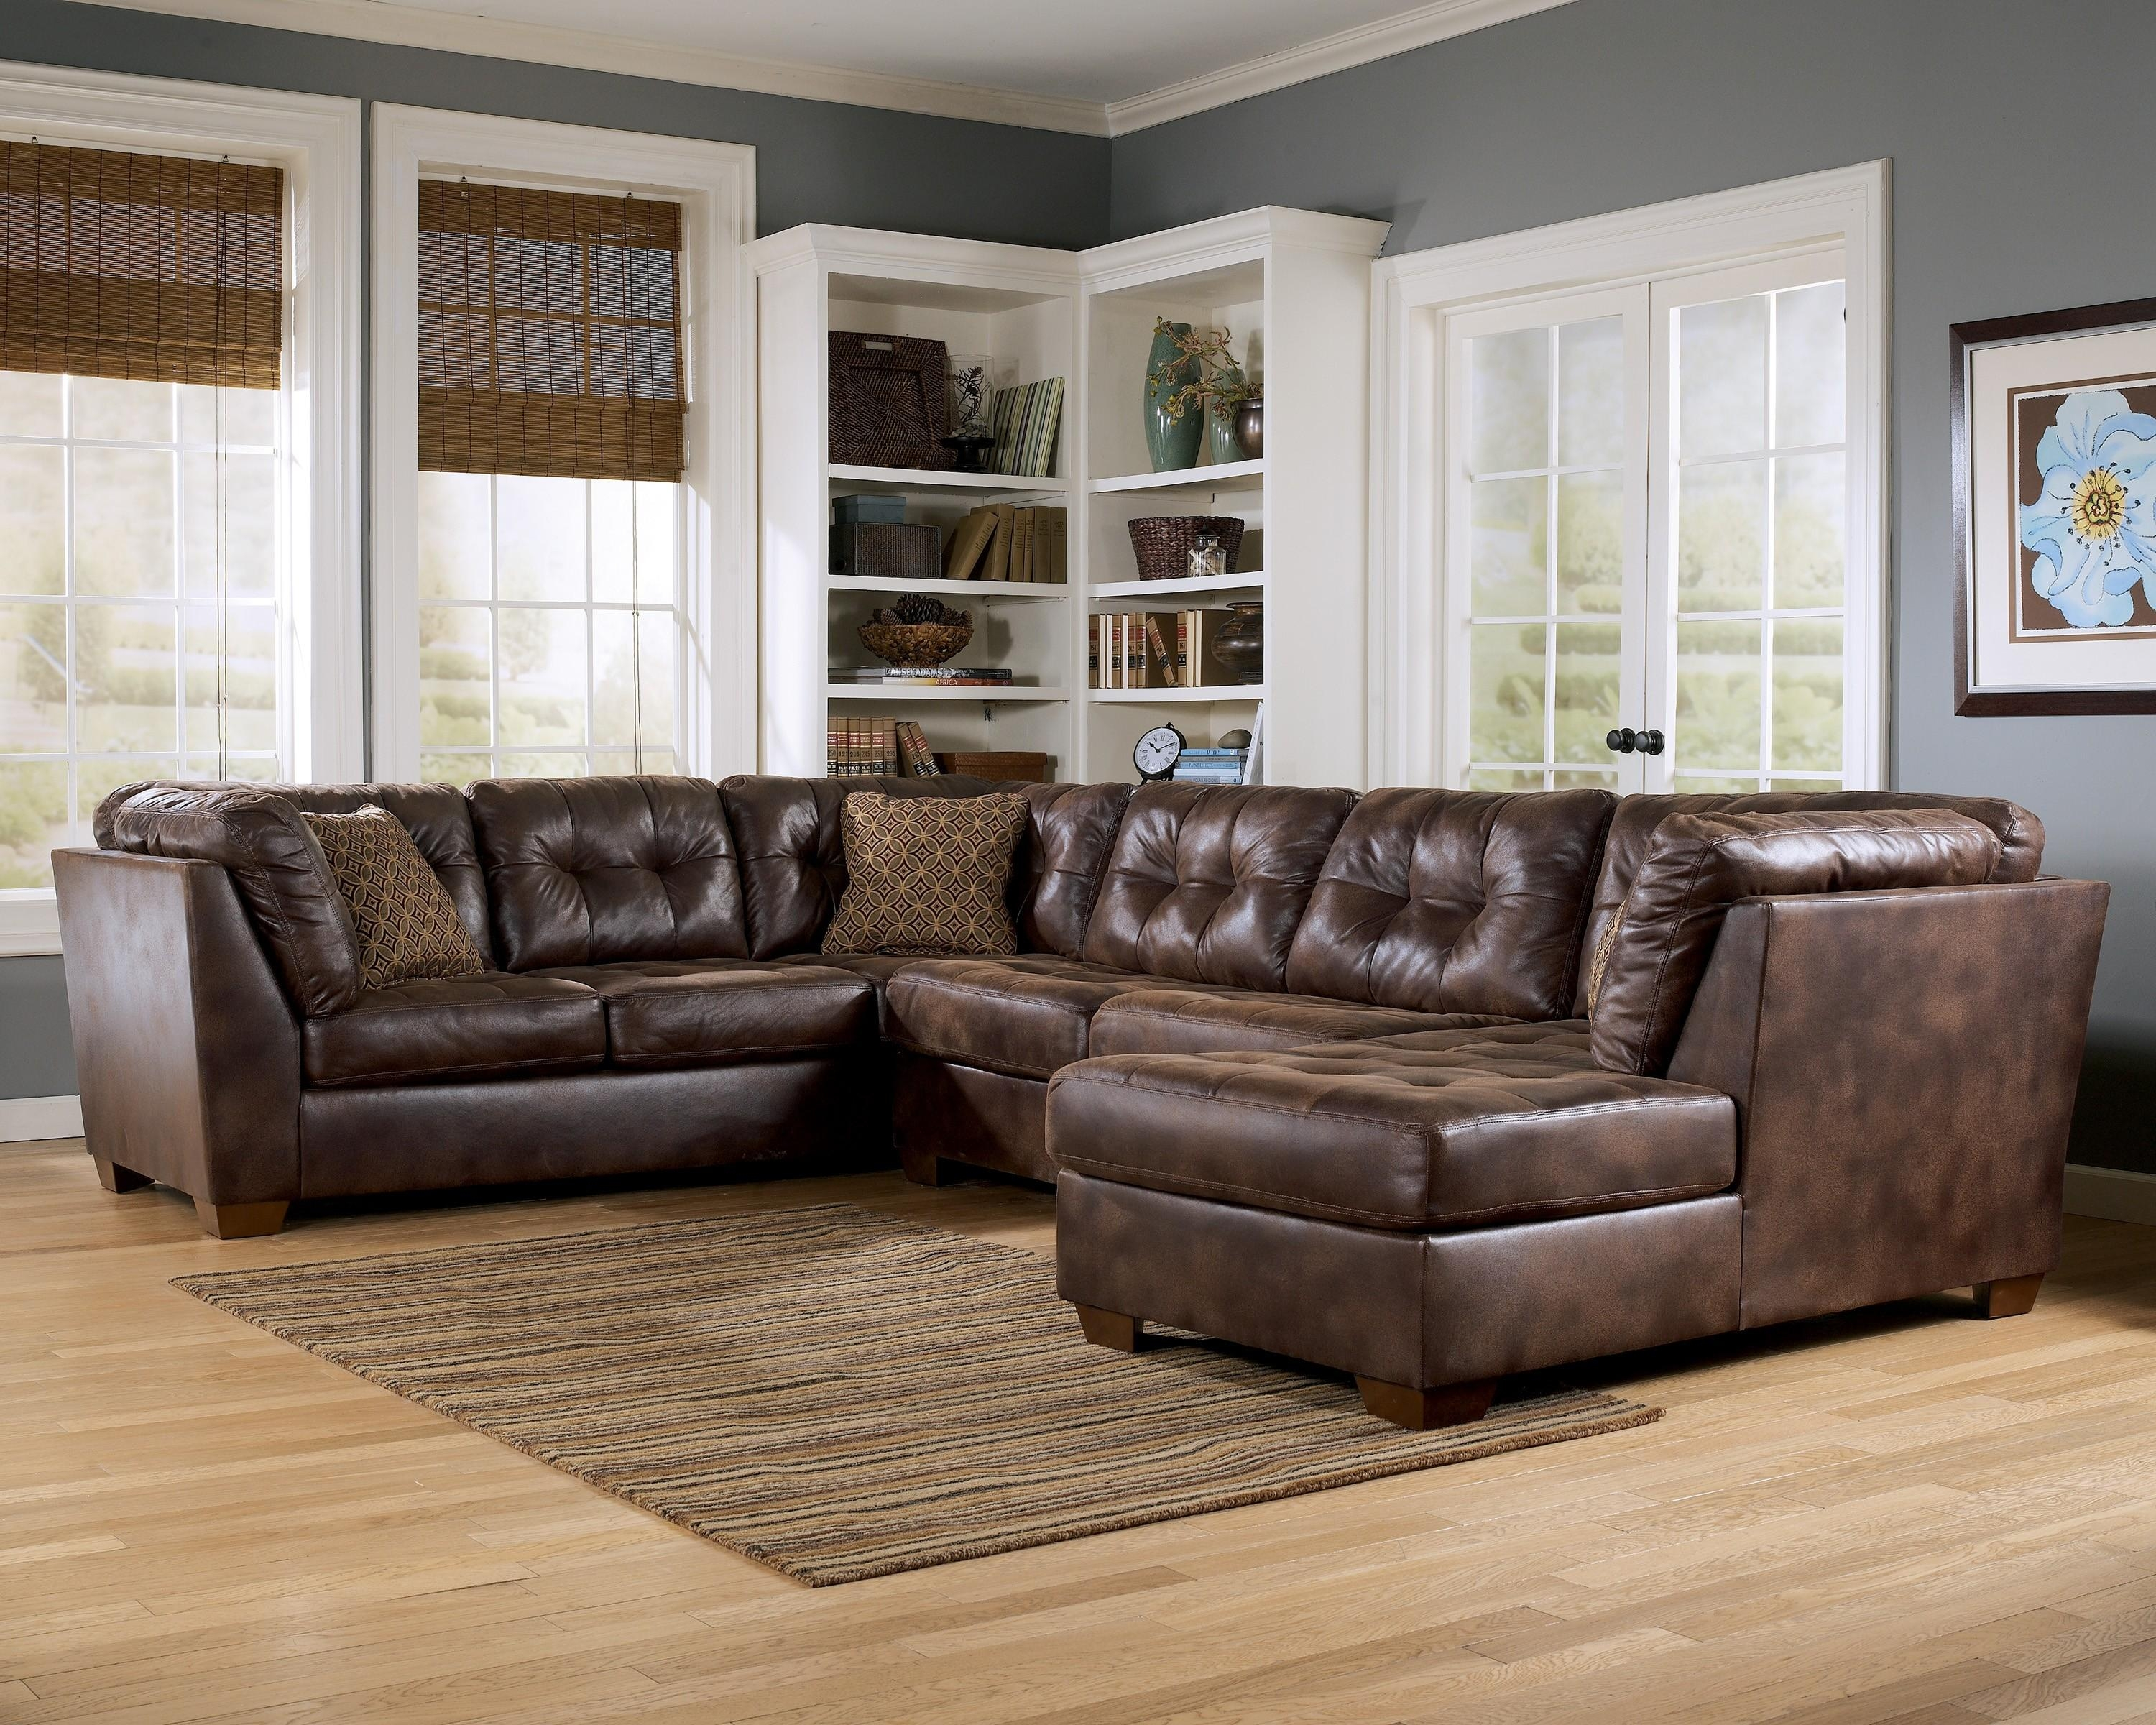 Ideas: Nice And Beautiful Italsofa For Living Room Ideas Regarding Natuzzi Microfiber Sectional Sofas (Image 4 of 20)